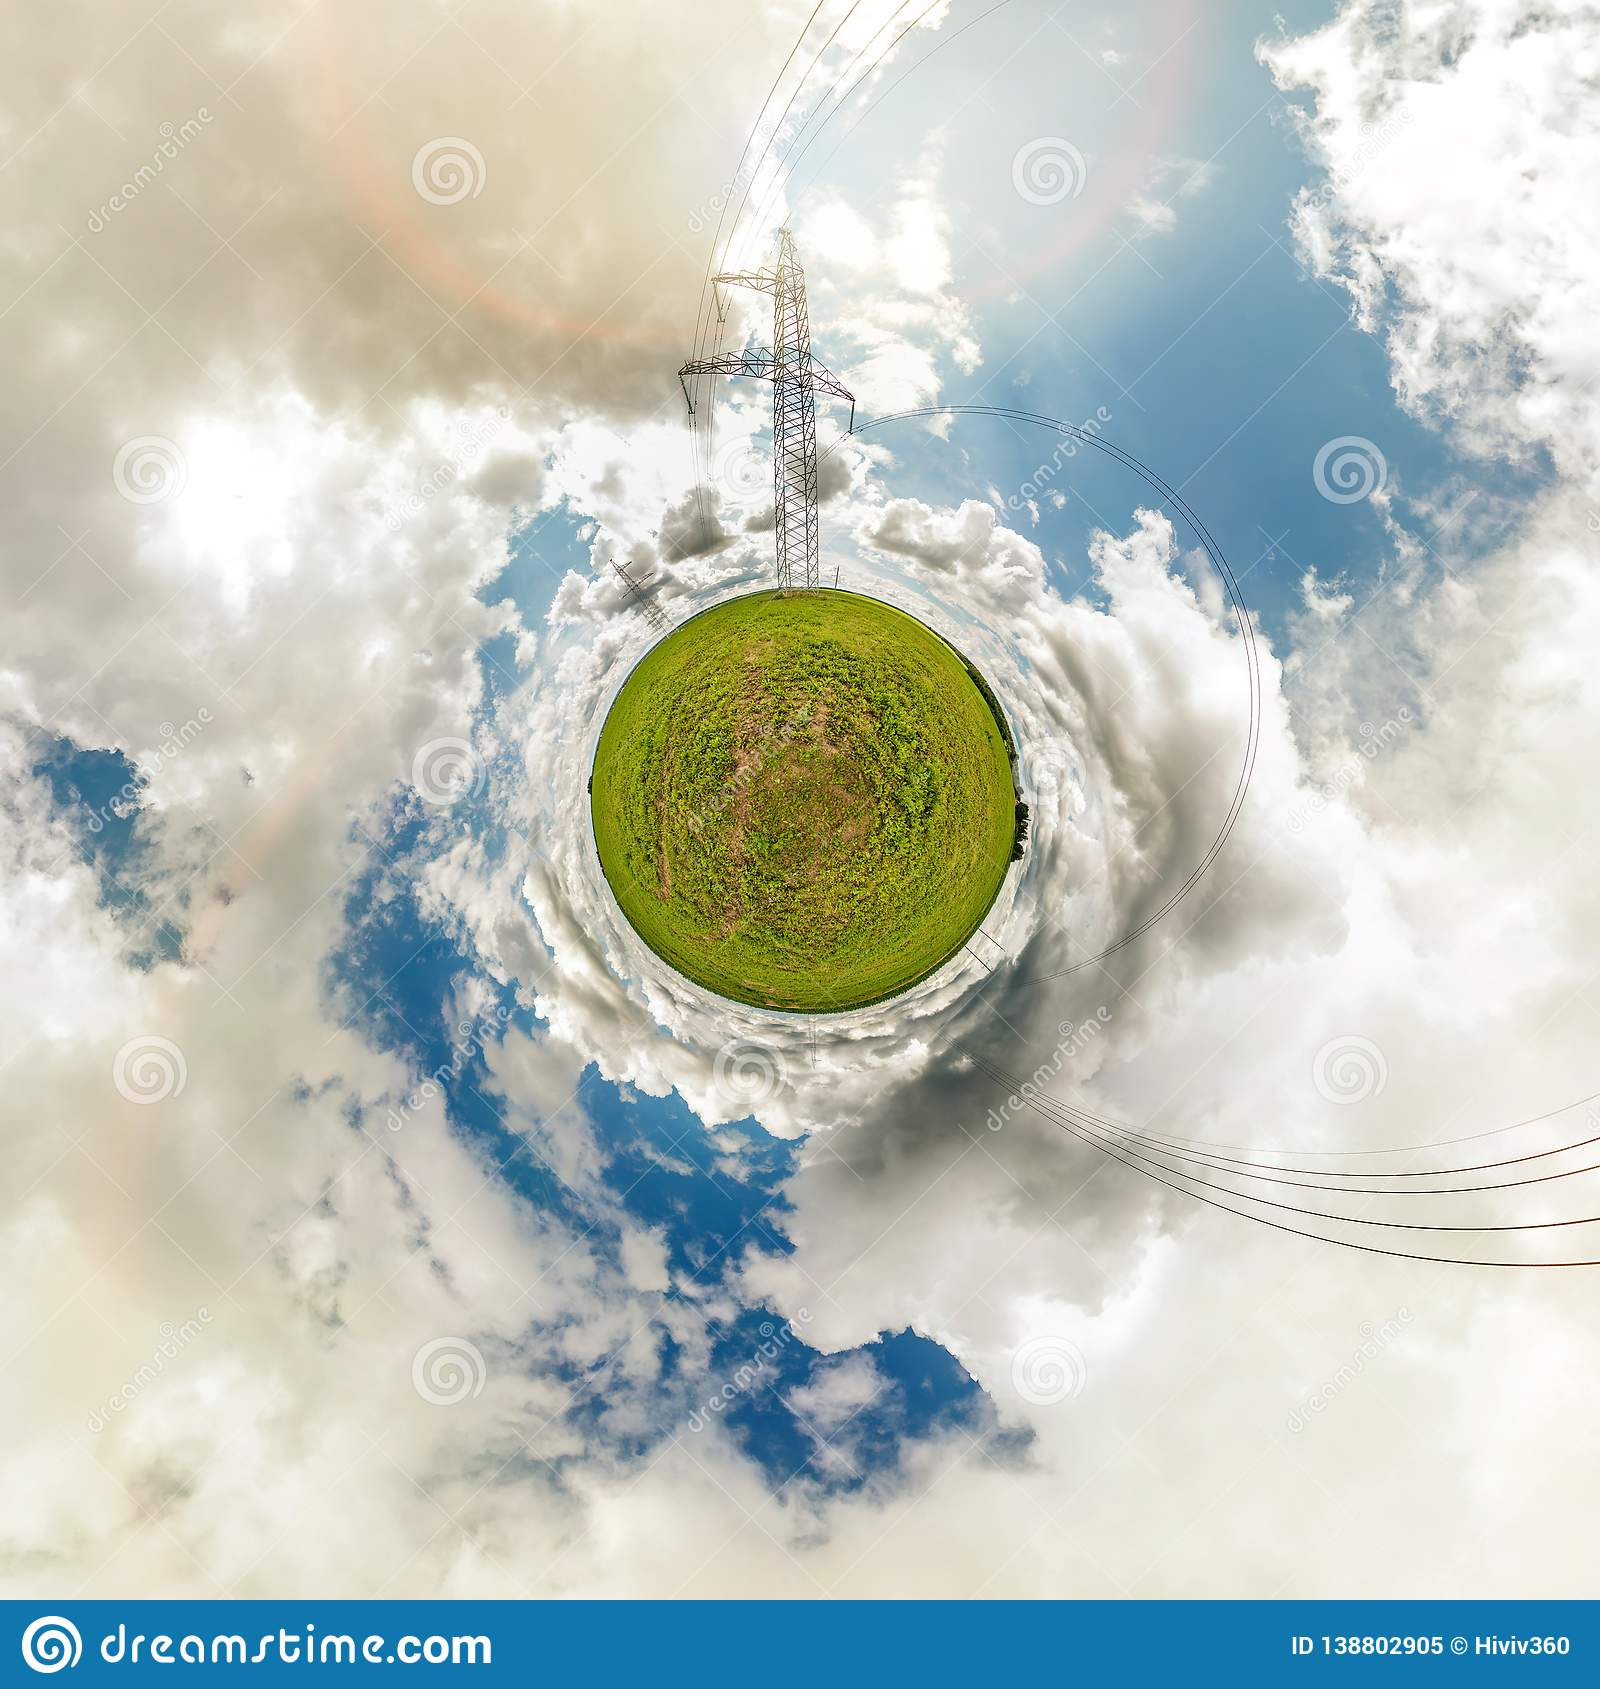 Little tiny planet. Spherical aerial 360 view panorama near high voltage electric pylon towers in field with beautiful clouds